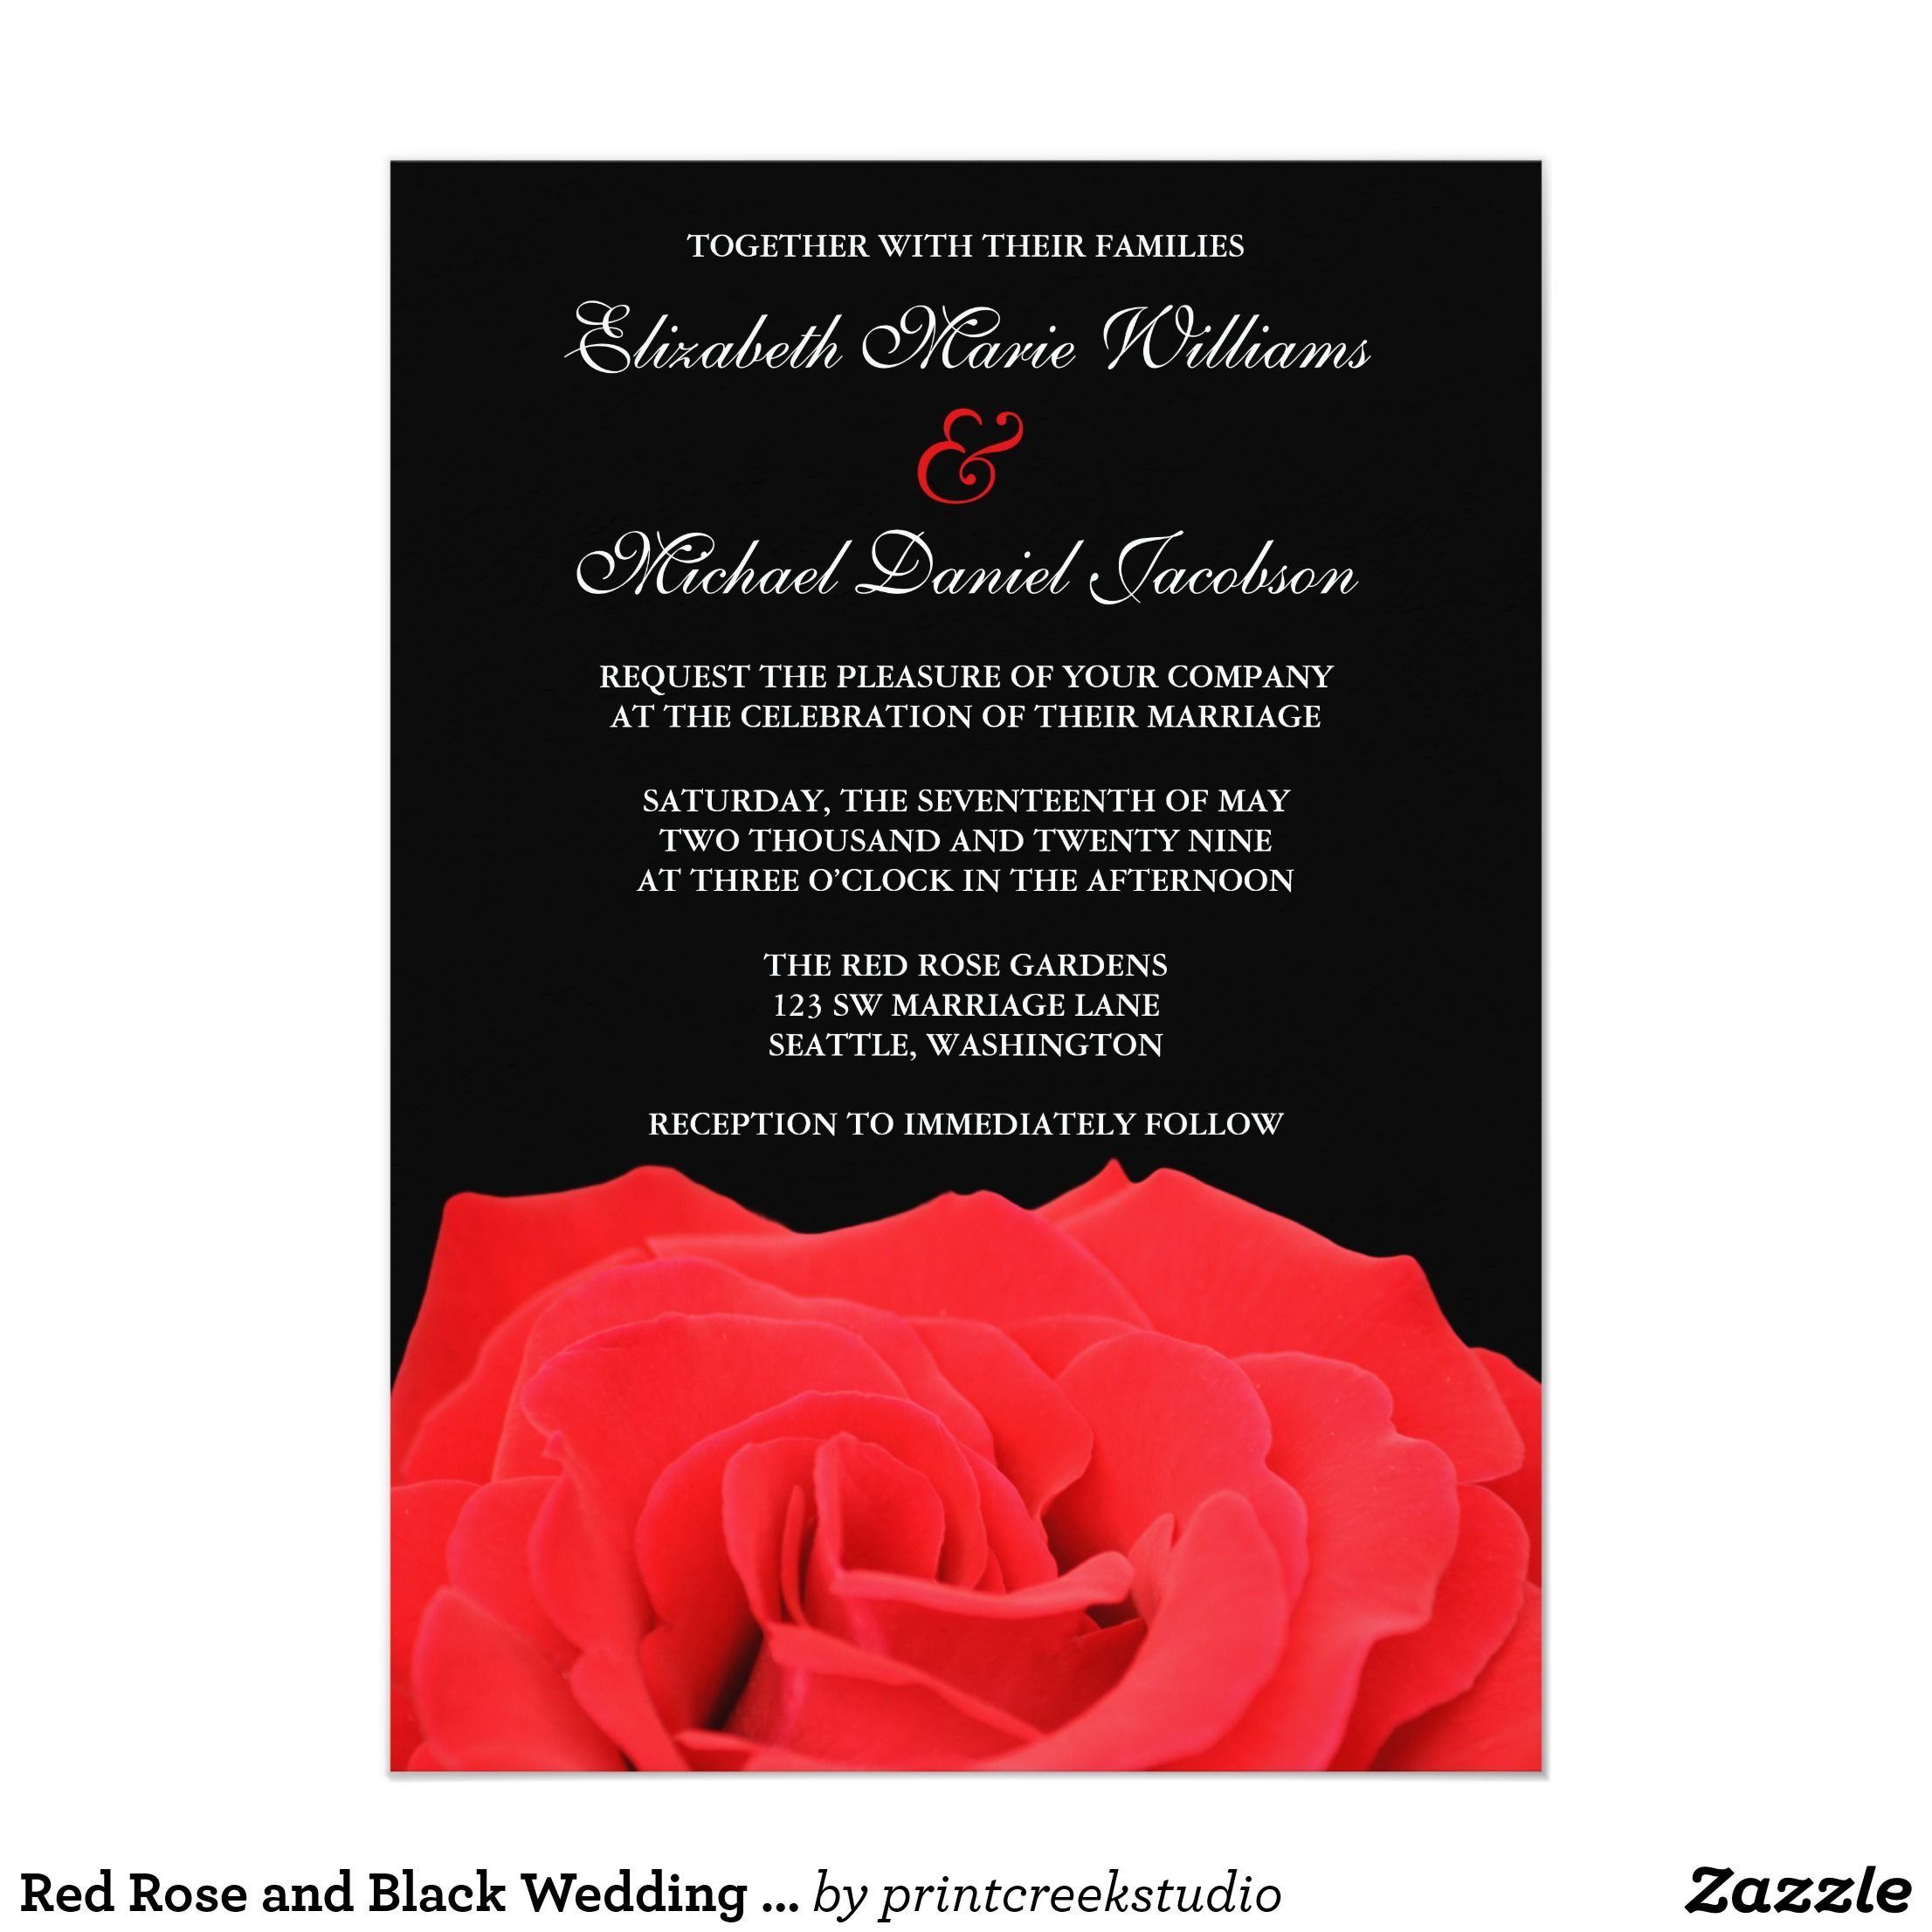 Red Rose and Black Wedding Invitations | Pinterest | Weddings and ...